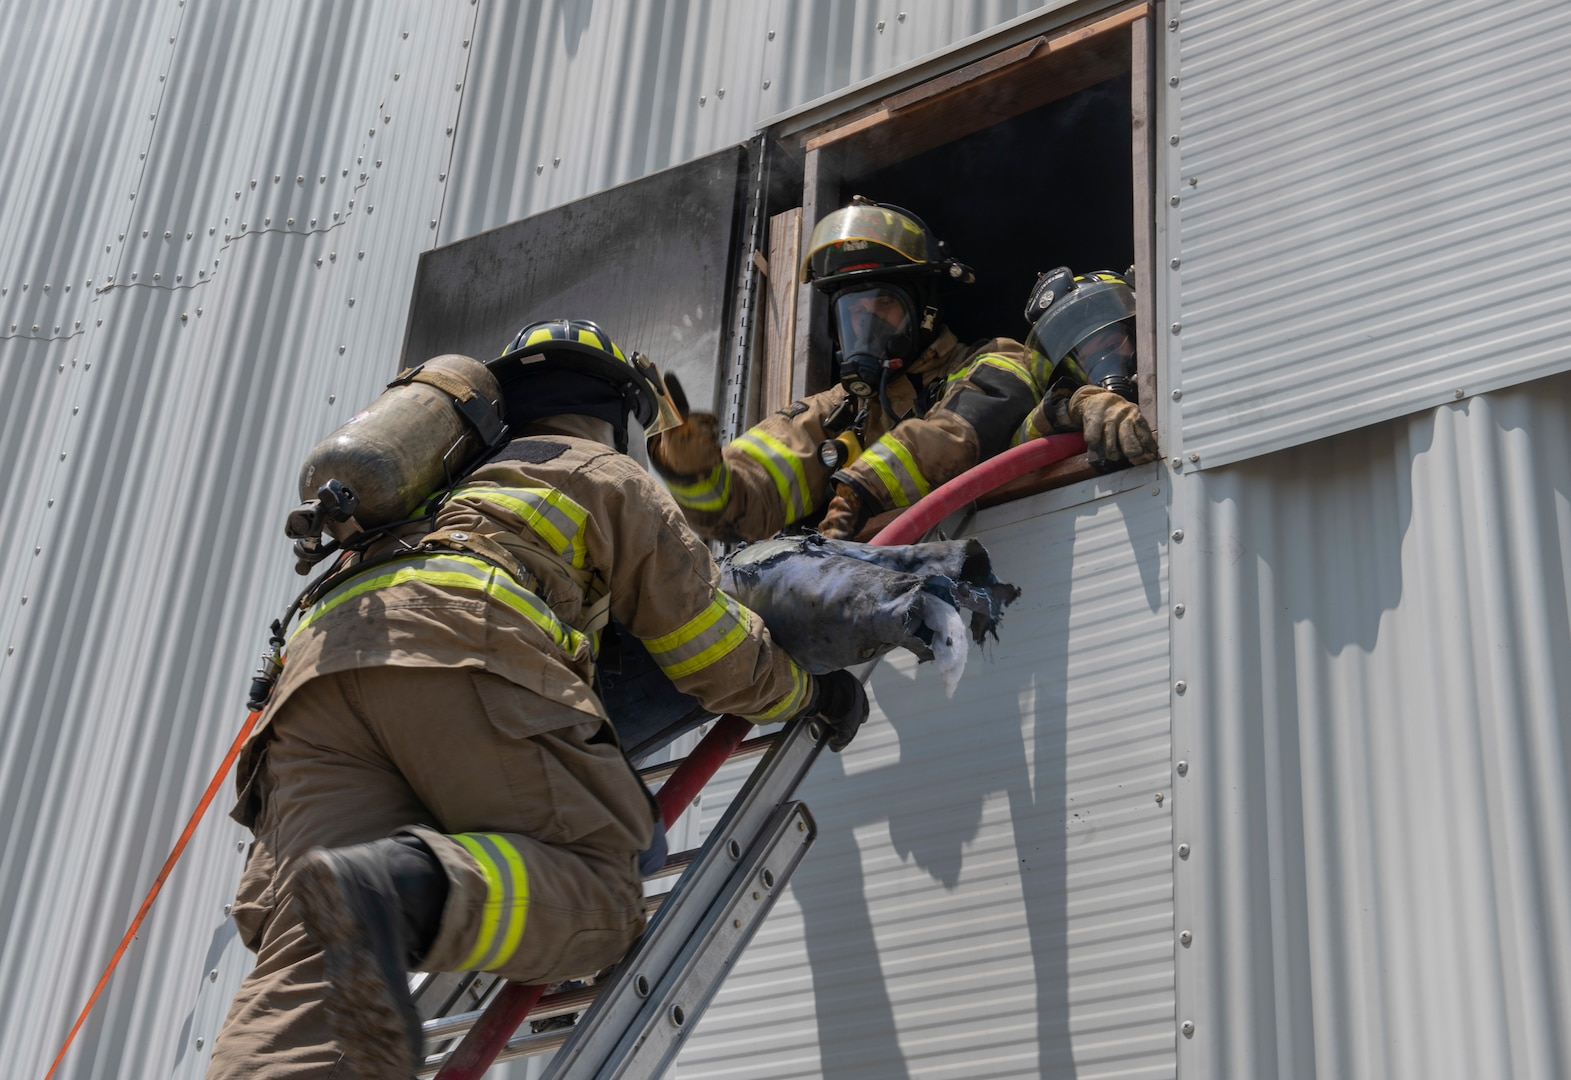 Joint Base San Antonio's 902nd Civil Engineer Squadron Fire Emergency Service members, and firefighters from Schertz and Cibolo fire departments, rescue a manikin from a building through a window during a live fire training exercise, April 14, 2021, at Joint Base San Antonio-Randolph, Texas.